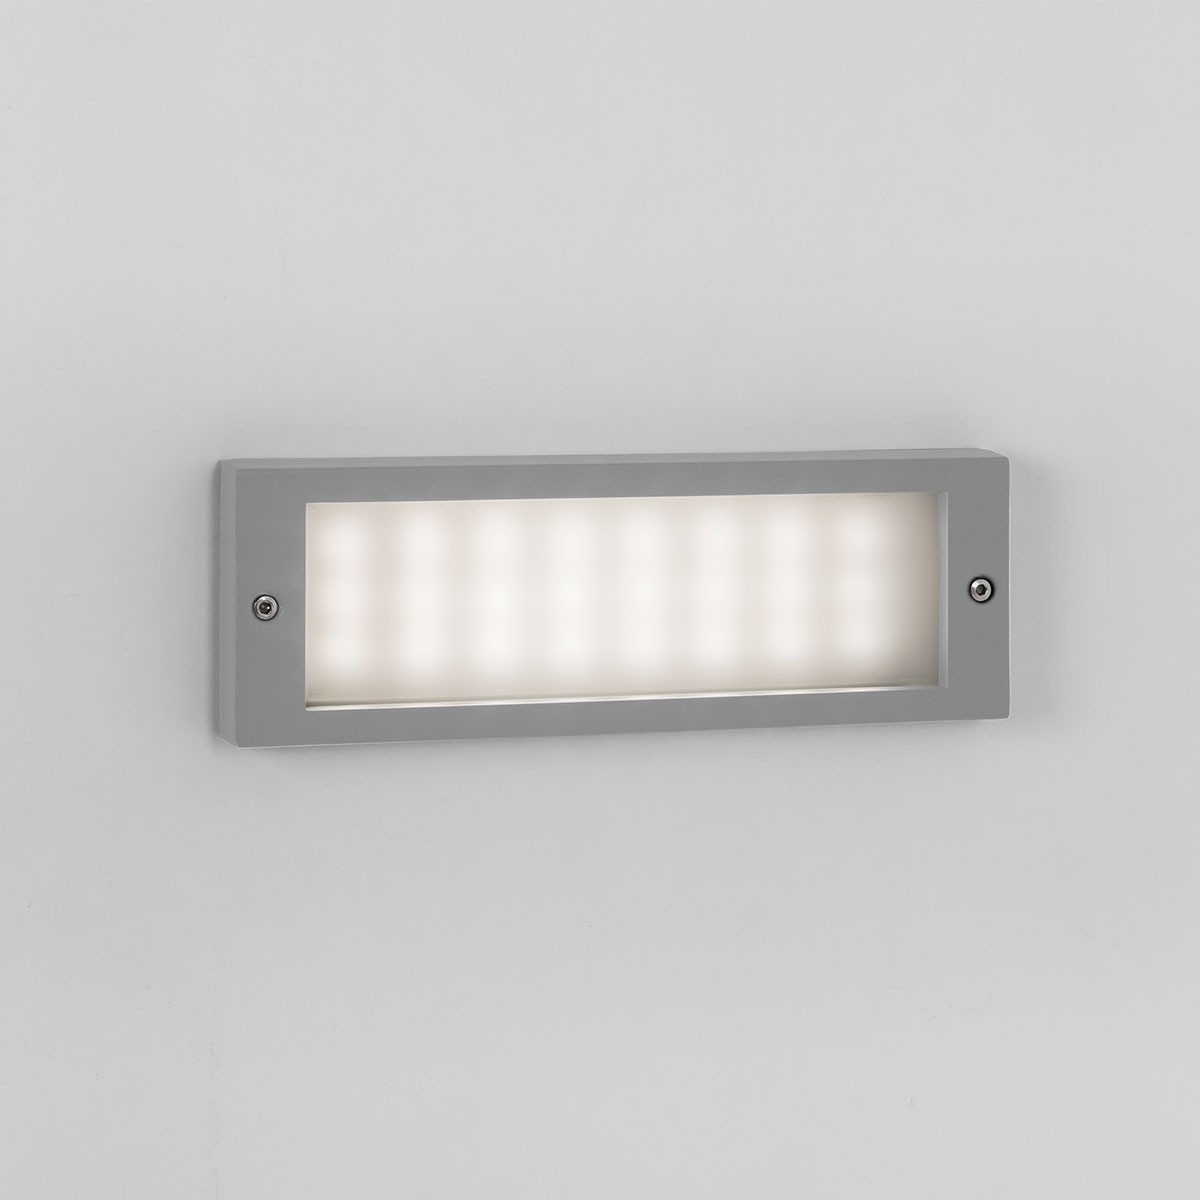 Astro brick outdoor led wall light at uk electrical supplies for Exterior led lights